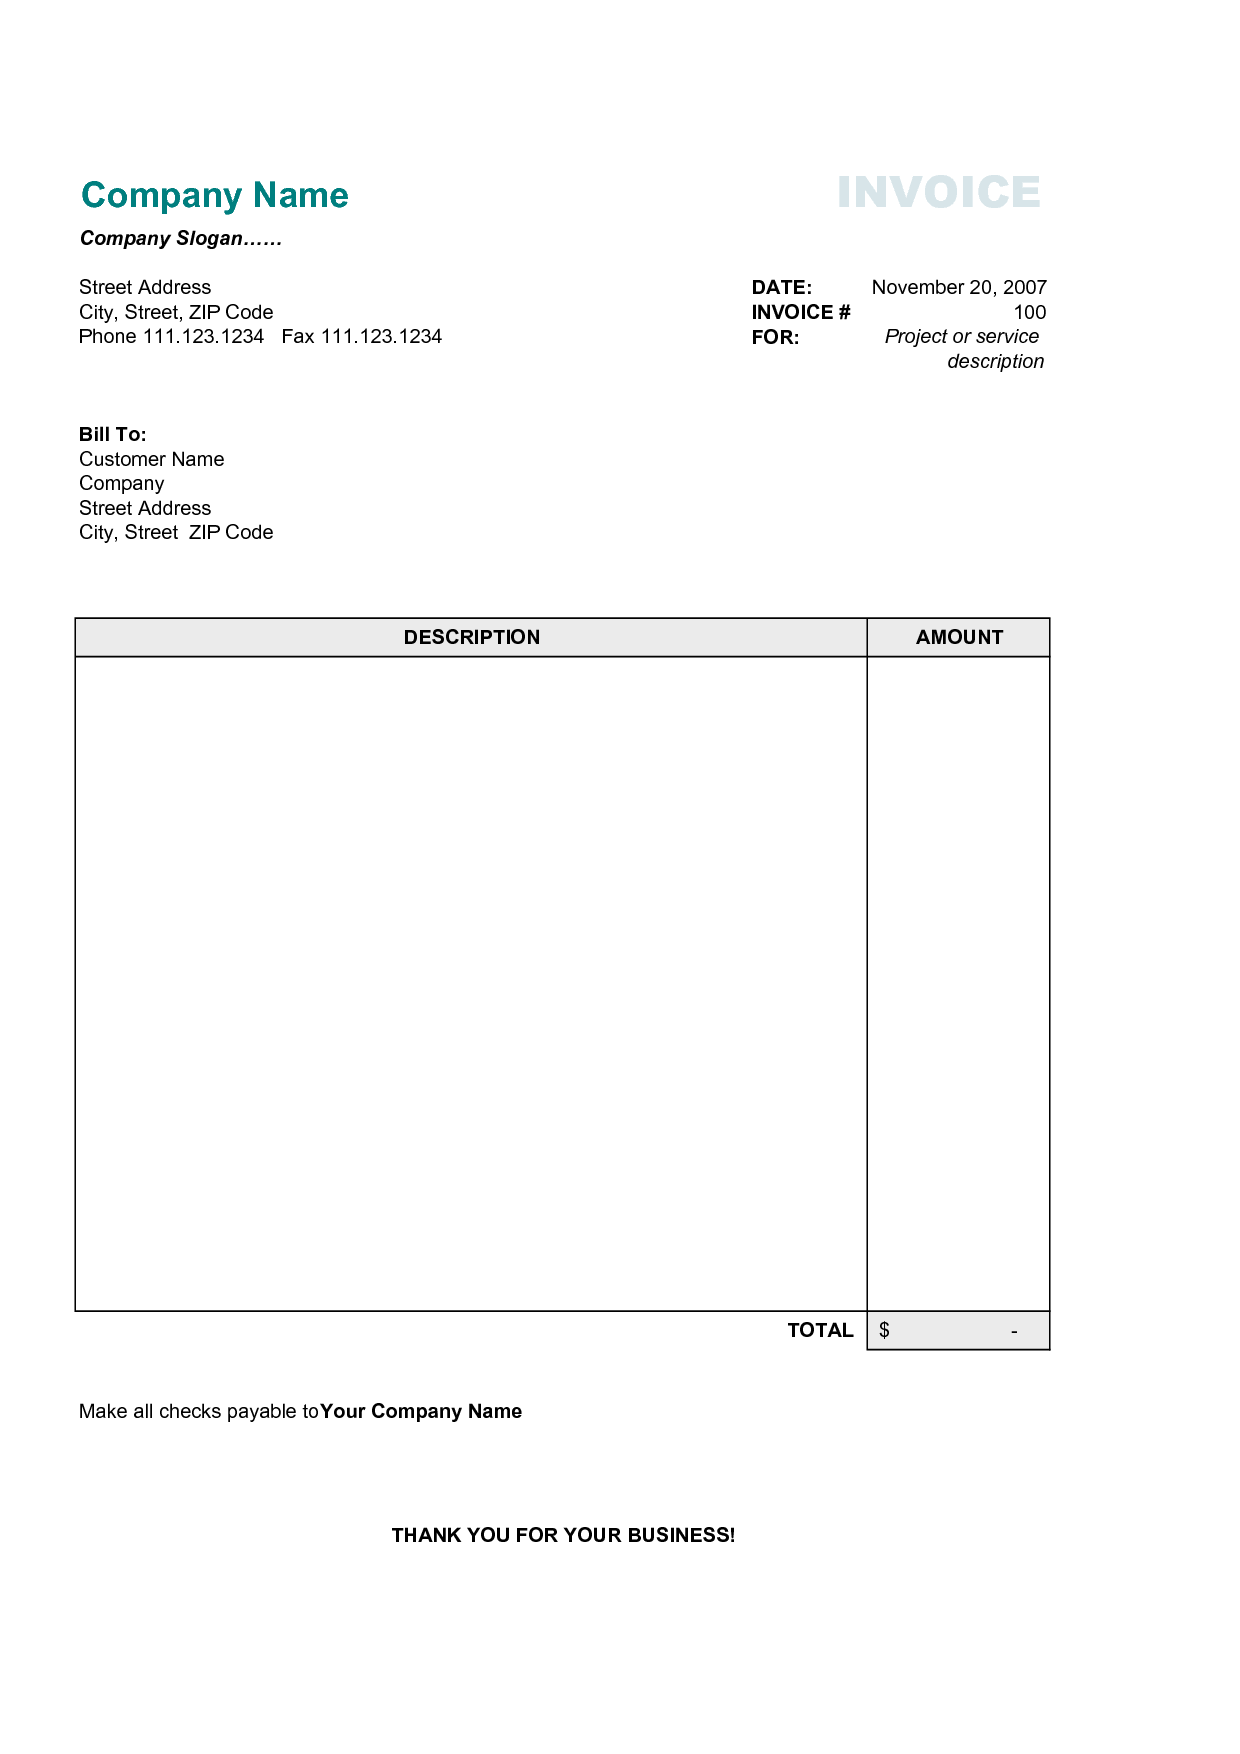 Free Simple Basic Invoice Template | Excel | PDF | Word (.doc)